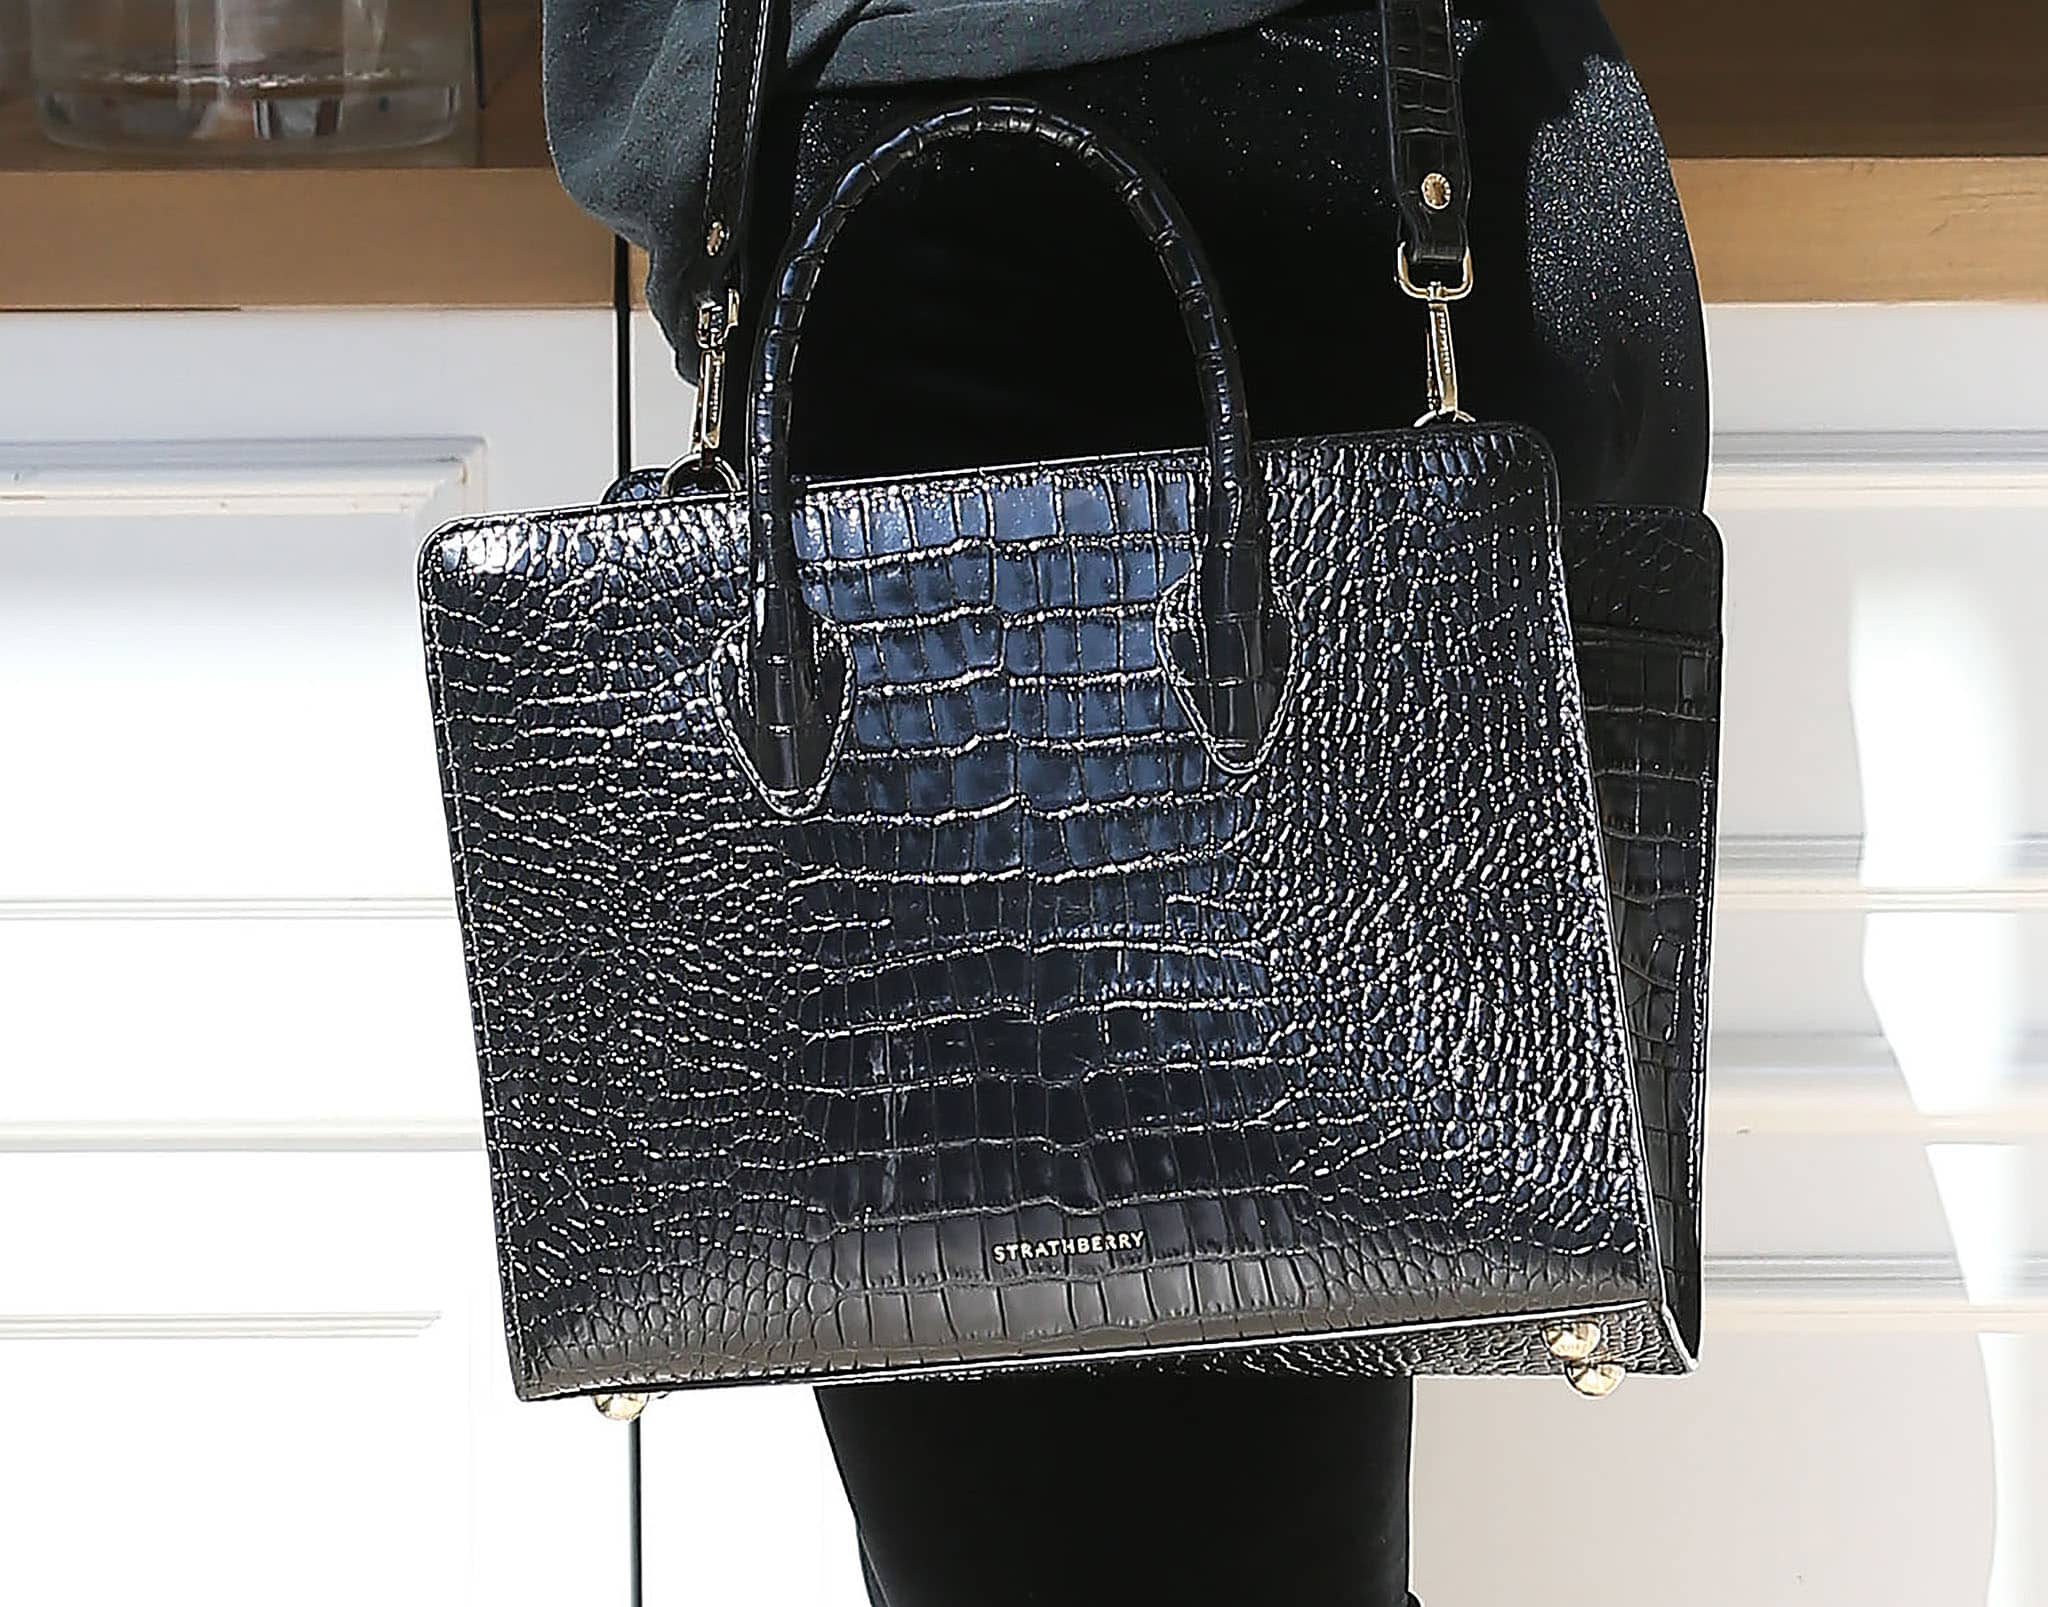 Addison Rae carries the Midi black croc-embossed leather tote from royal-approved bag label Strathberry